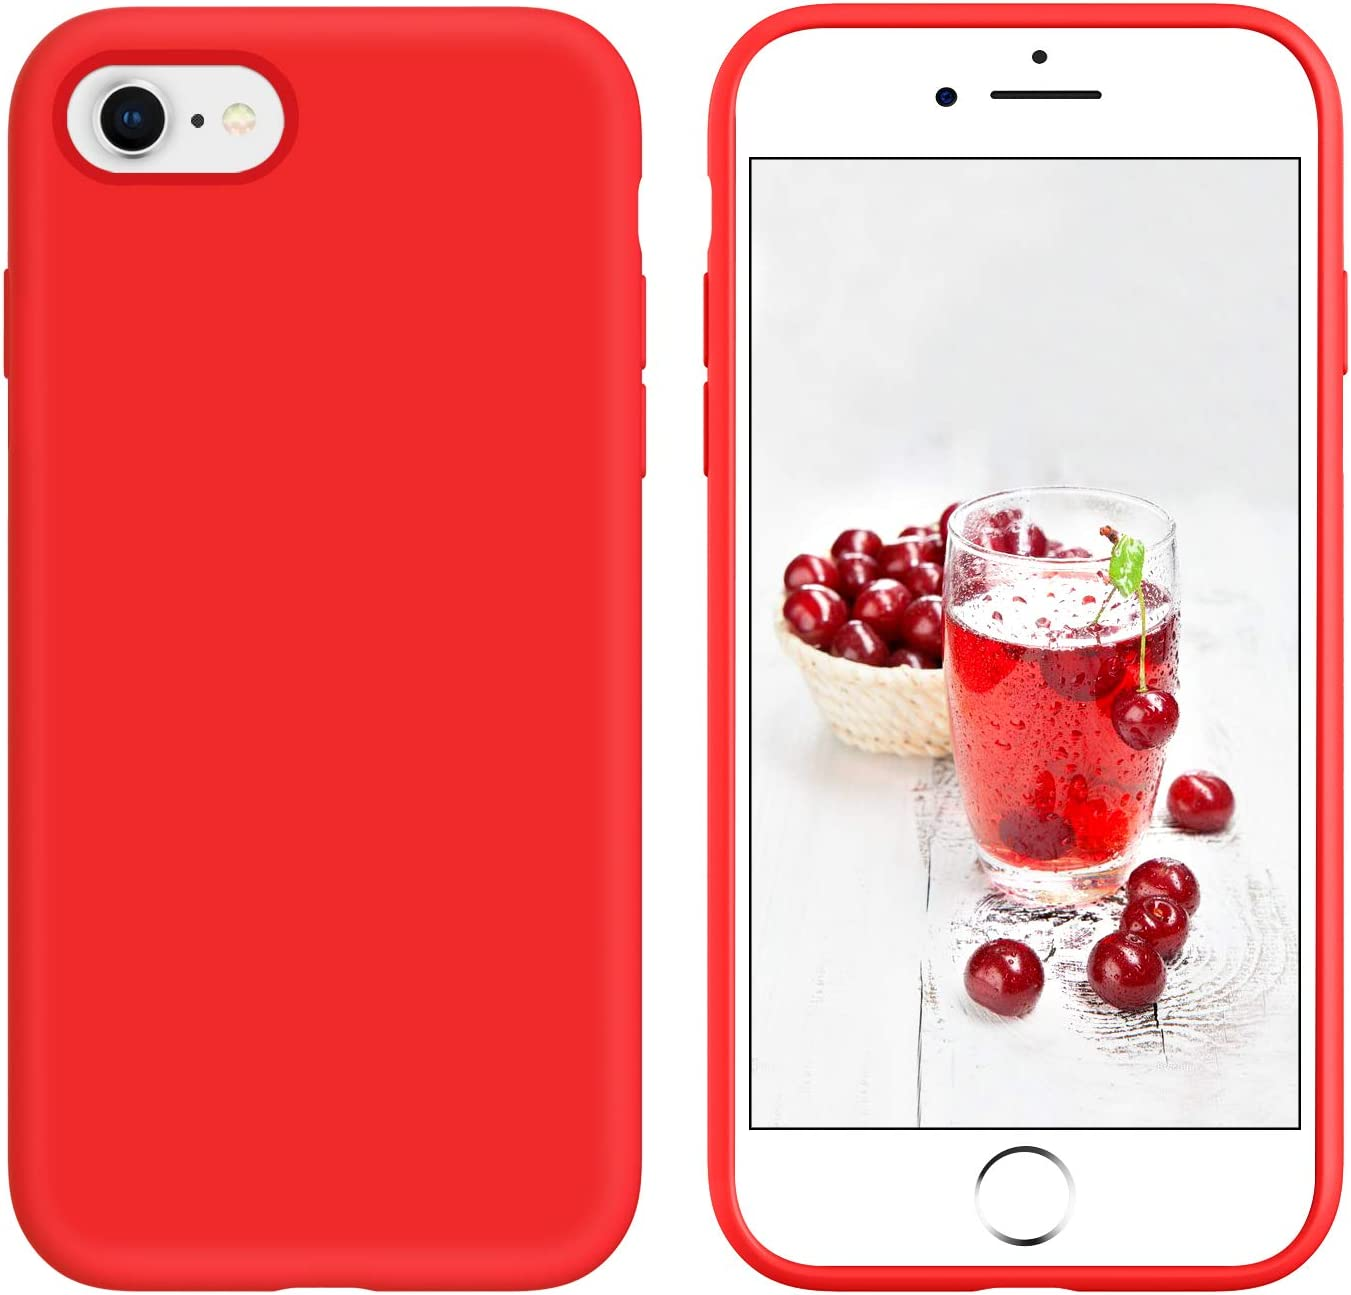 YINLAI iPhone SE 2020 Case iPhone 8 Case iPhone 7 Case Slim Liquid Silicone Hybrid Rubber Shockproof Bumper Protective Phone Cover for iPhone SE 2nd Generation/iPhone 8/7 Girls Women Men Summer Red